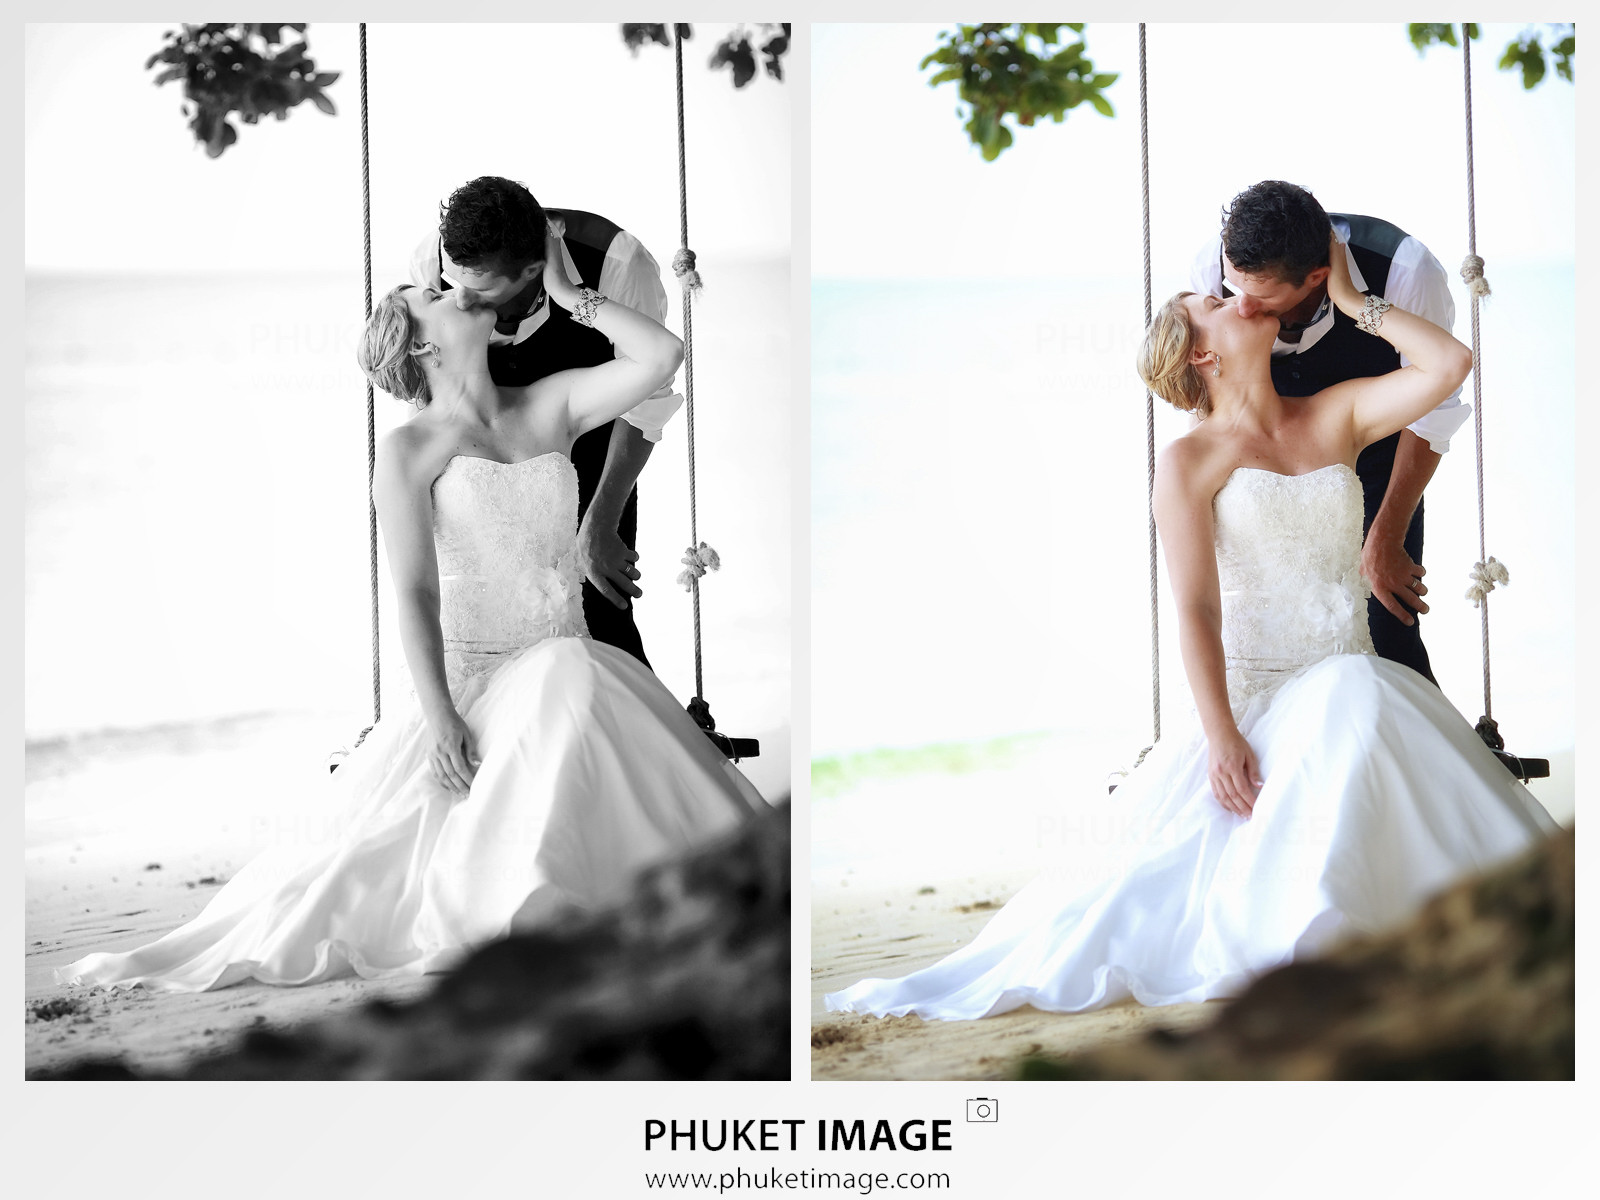 Wedding cinematographer and wedding photographer in Phuket